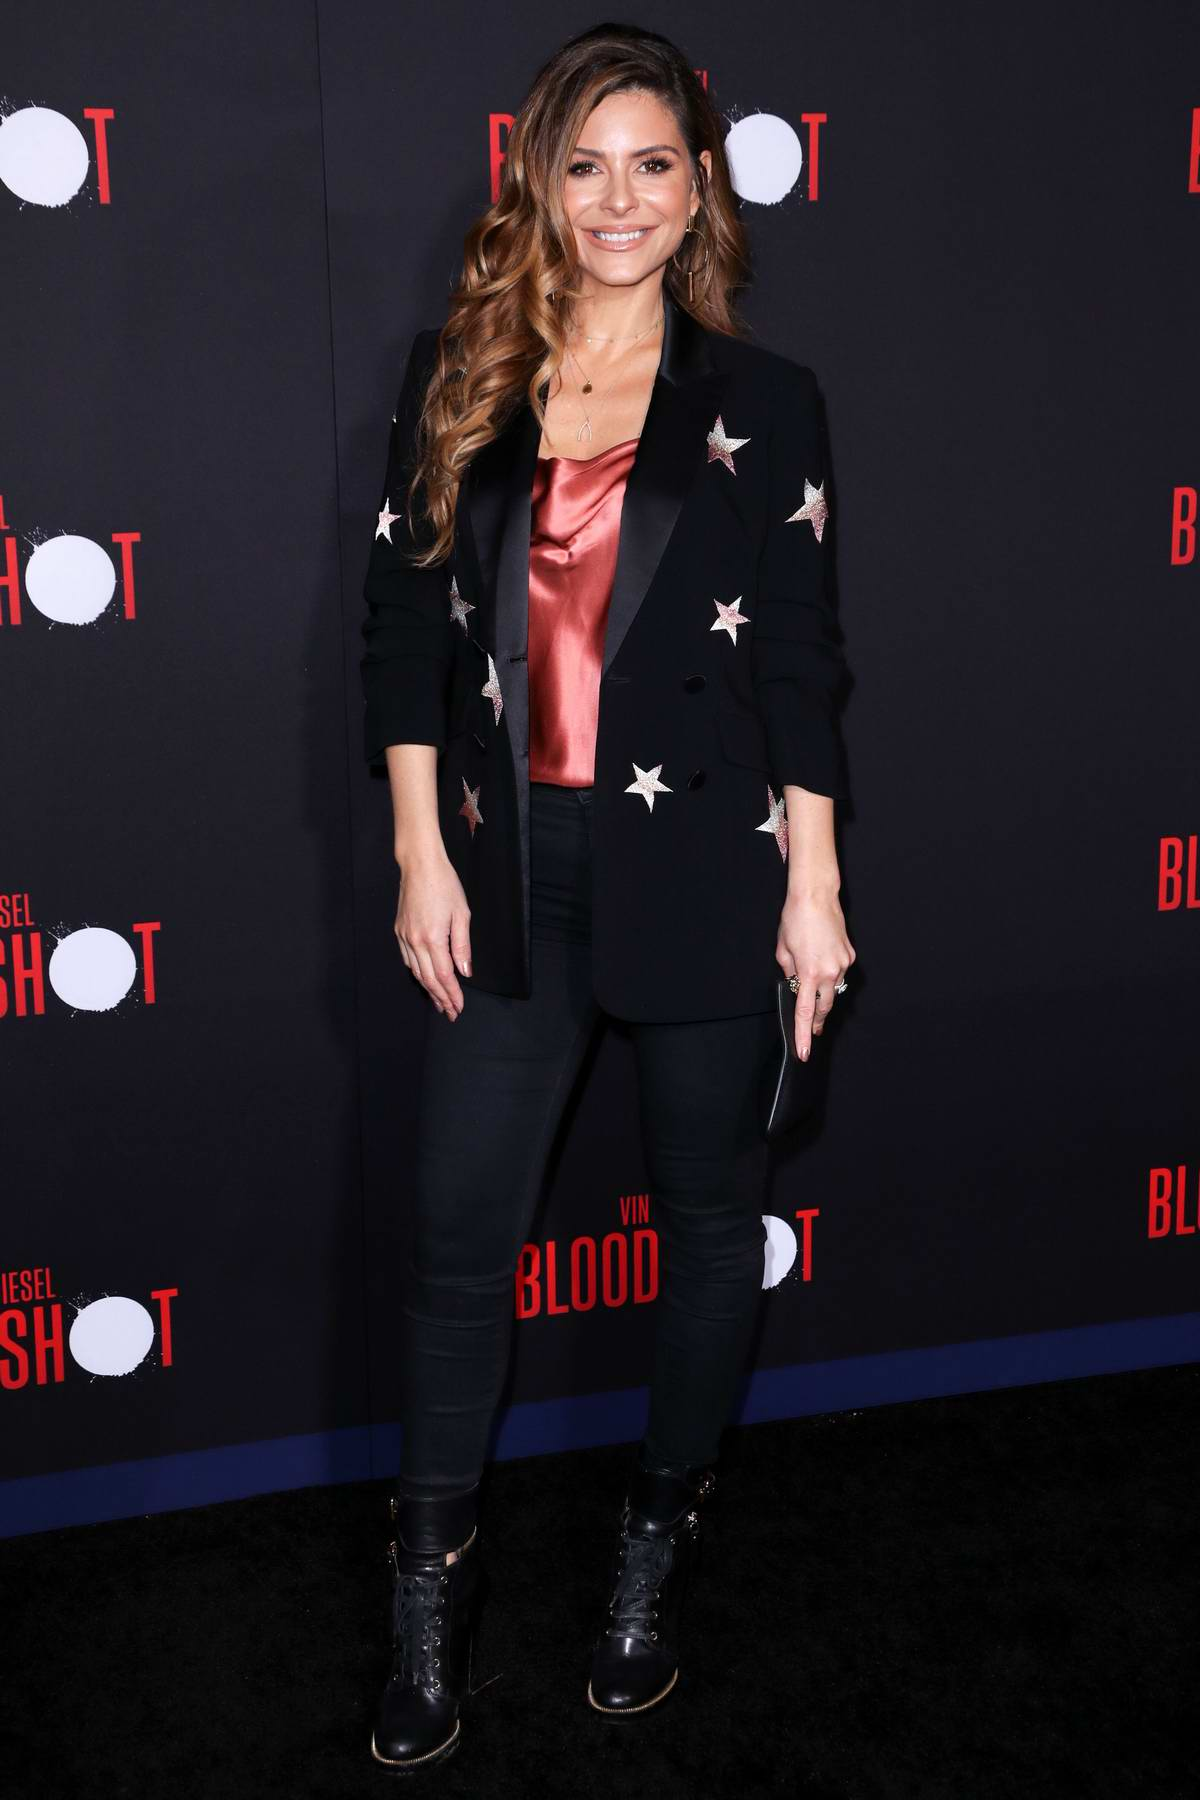 Maria Menounos attends the Premiere of 'Bloodshot' at the Regency Village Theatre in Westwood, California